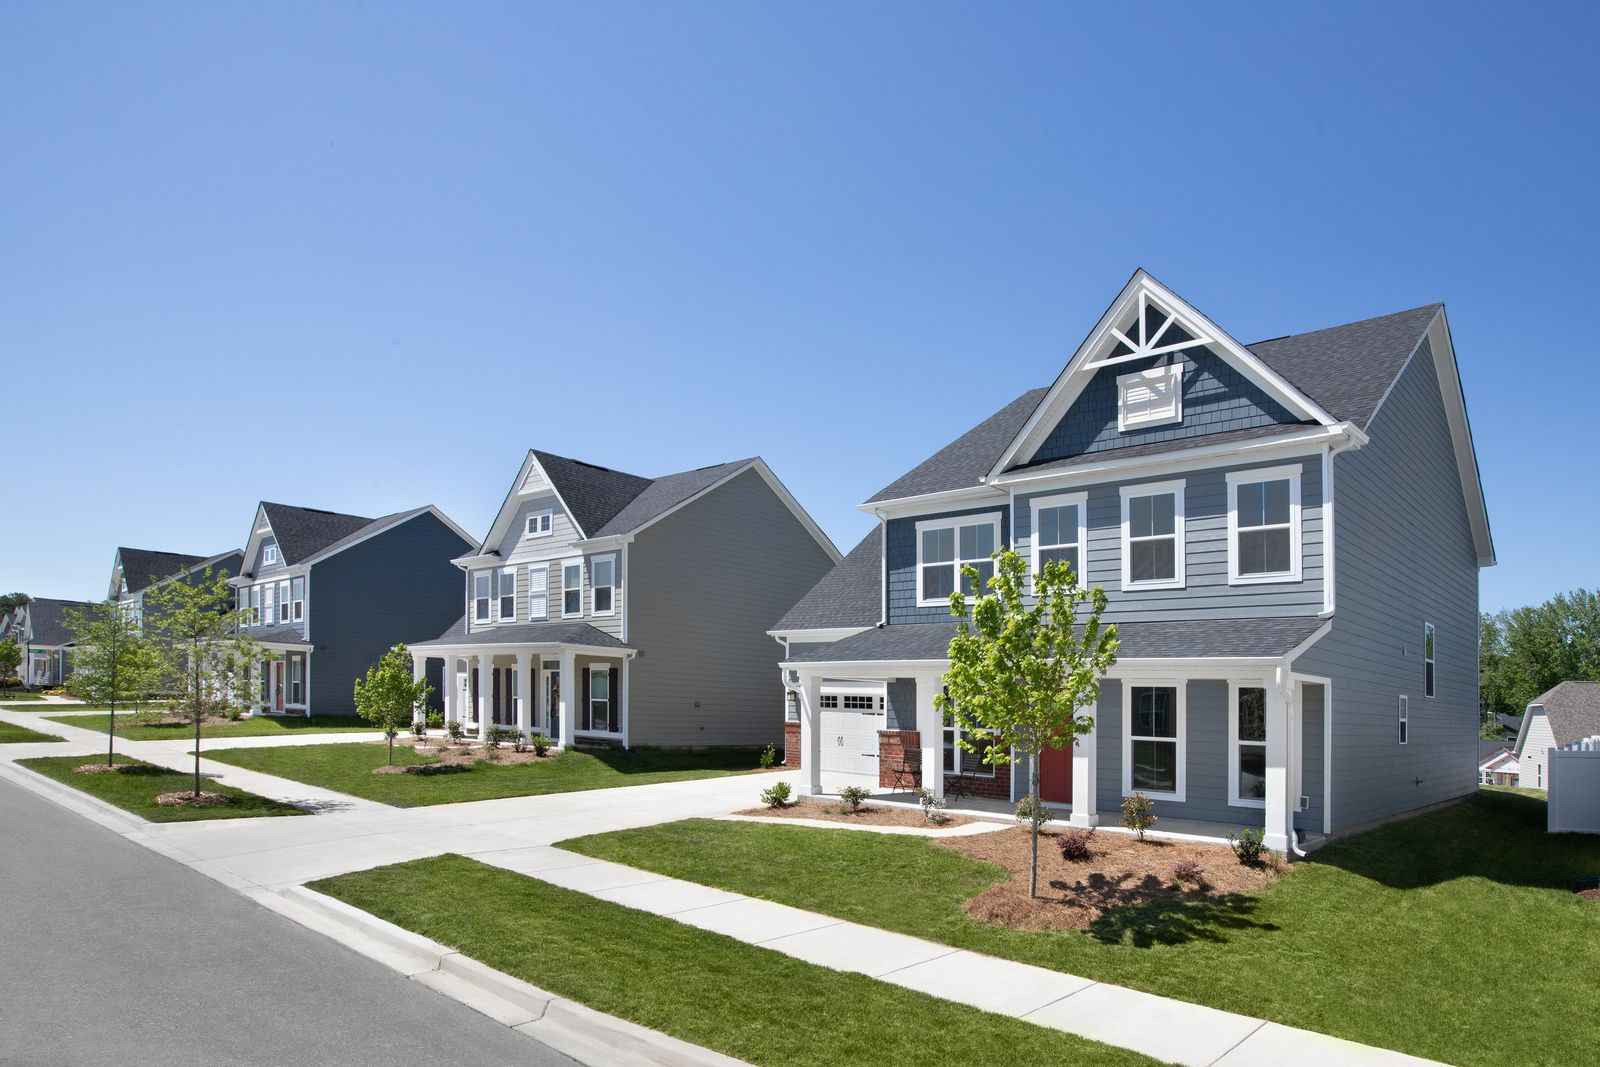 Charming Community with Plenty of Amenities in Huntersville:You'll lovethe picturesque streets and beautiful homes available at Vermillion.Schedule an appointment!